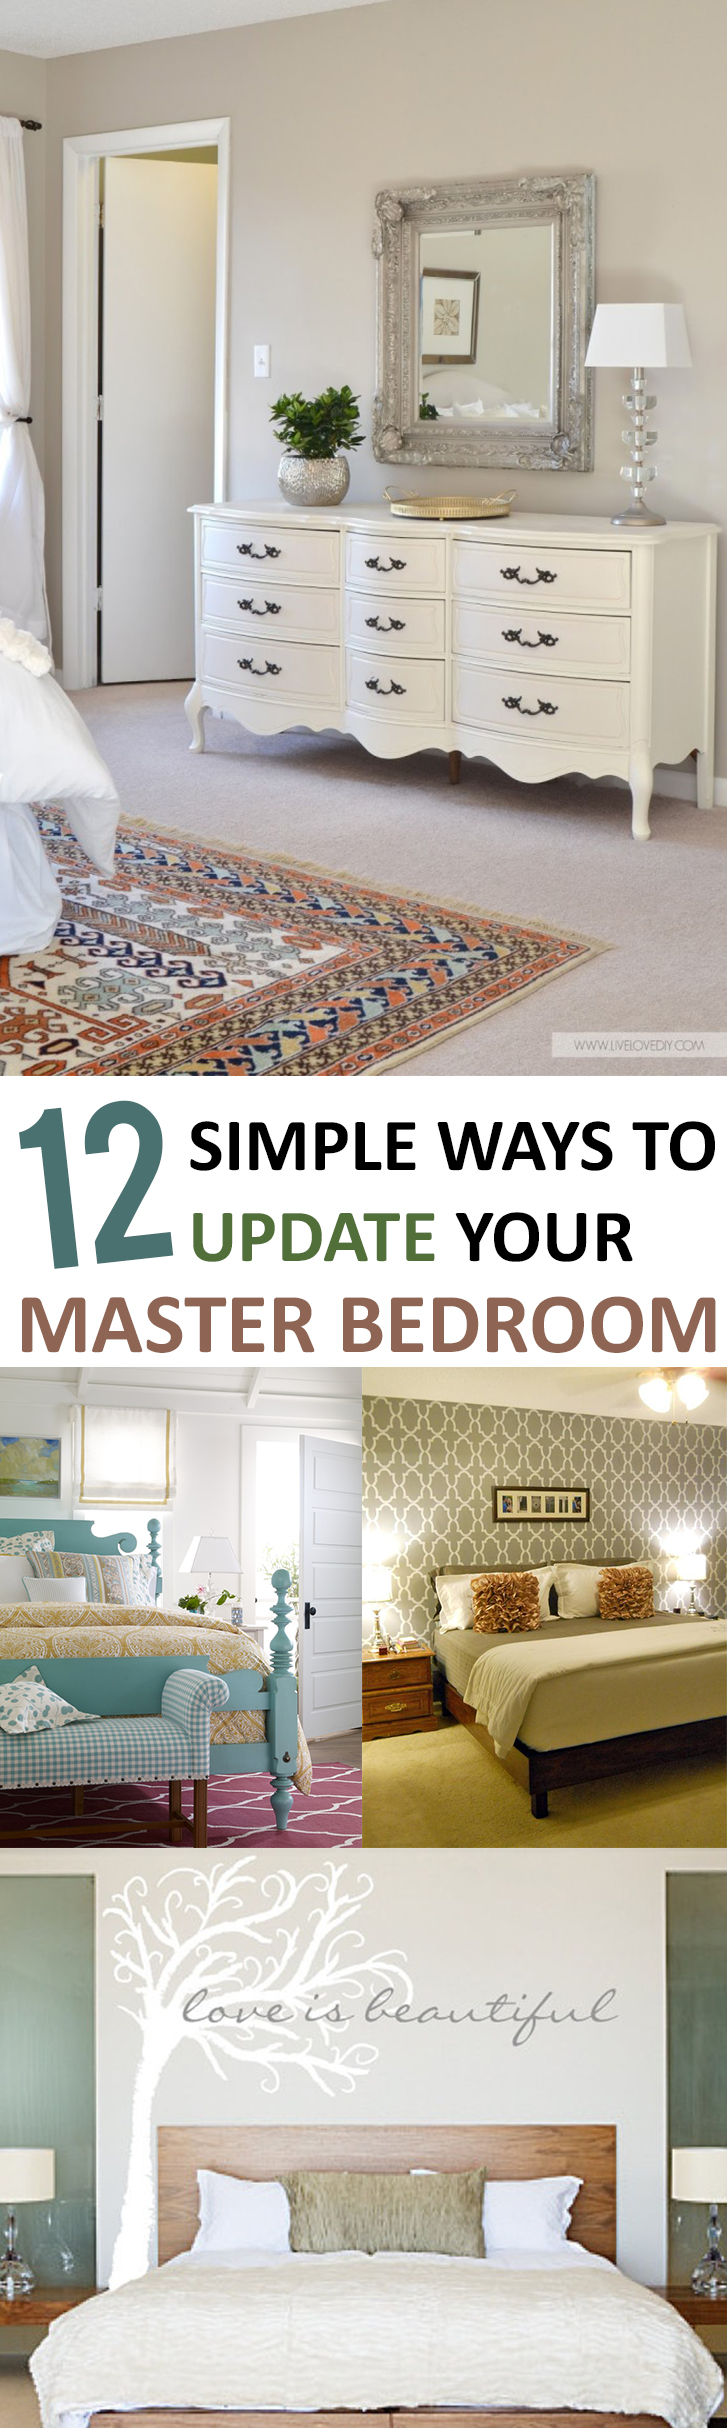 Master Bedroom Updates 12 simple ways to update your master bedroom -